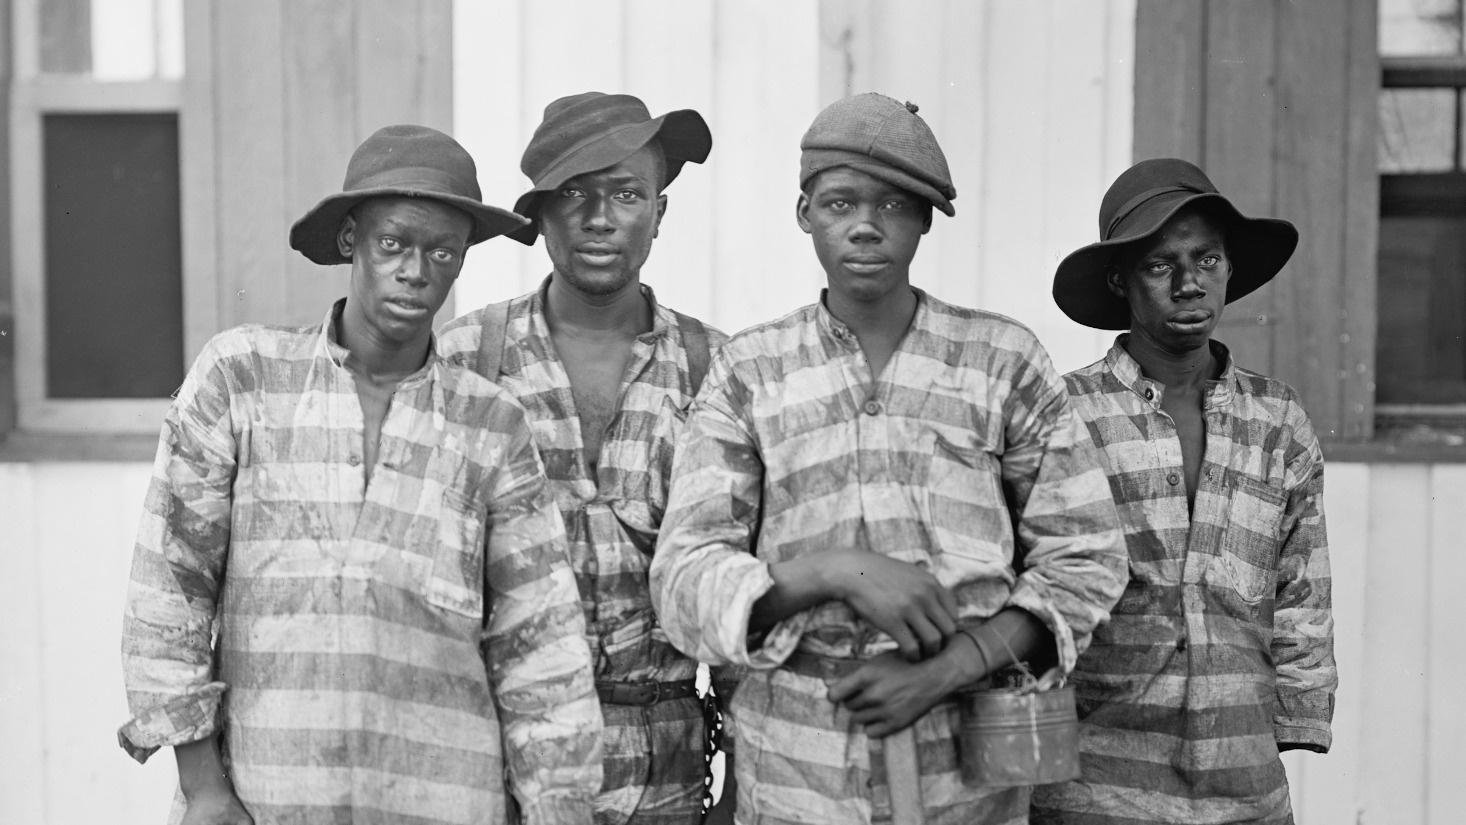 images of reenslavement, including chain gang